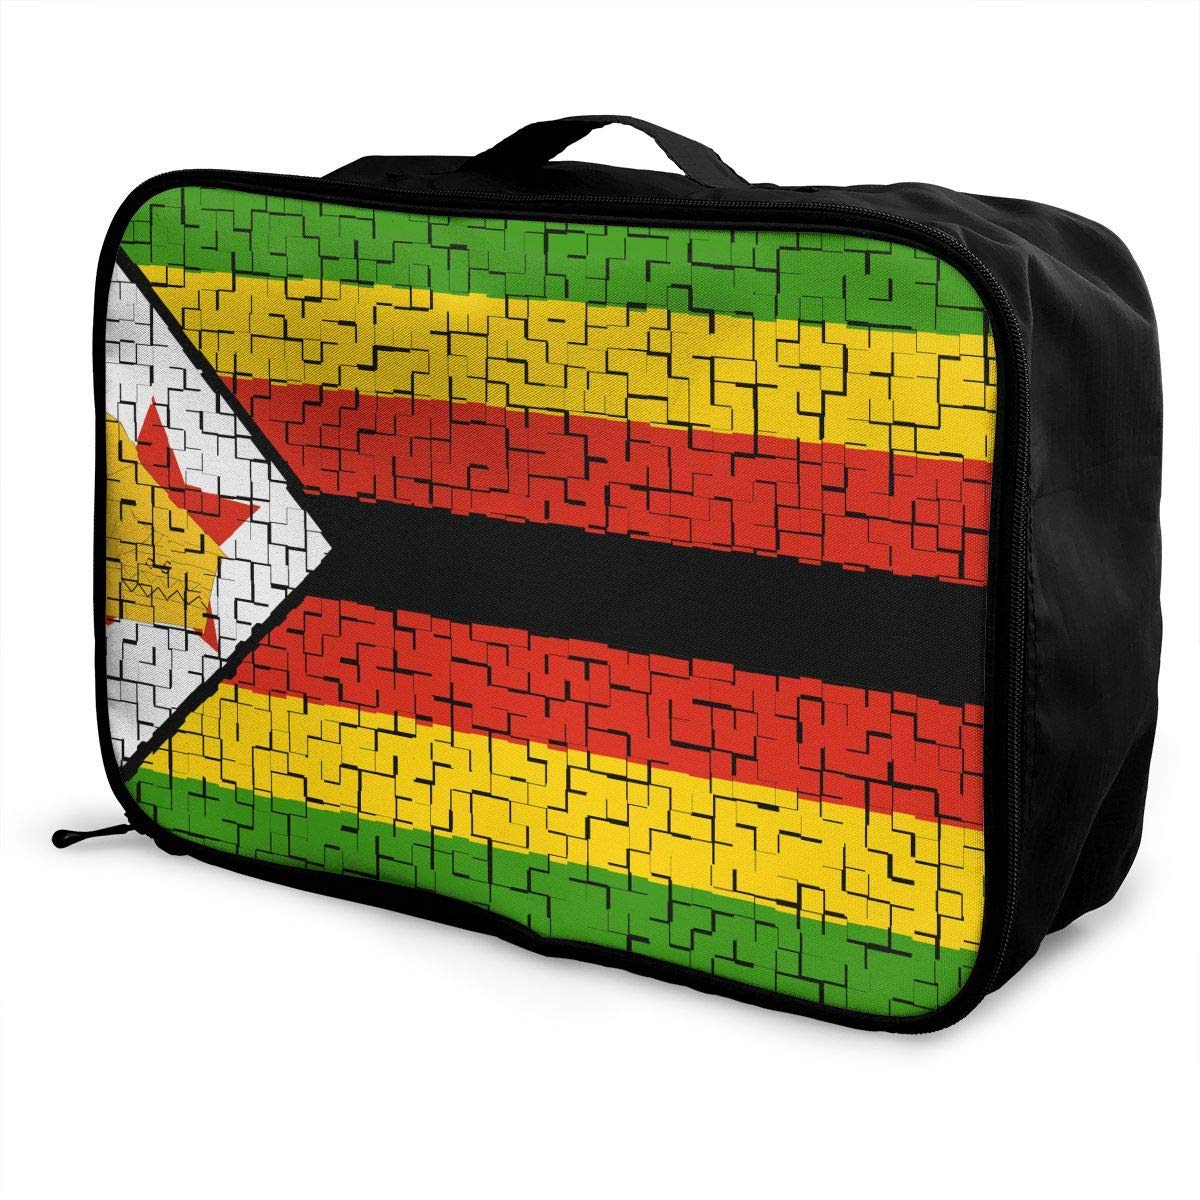 Portable Luggage Duffel Bag Zimbabwe Flag Puzzle Travel Bags Carry-on In Trolley Handle